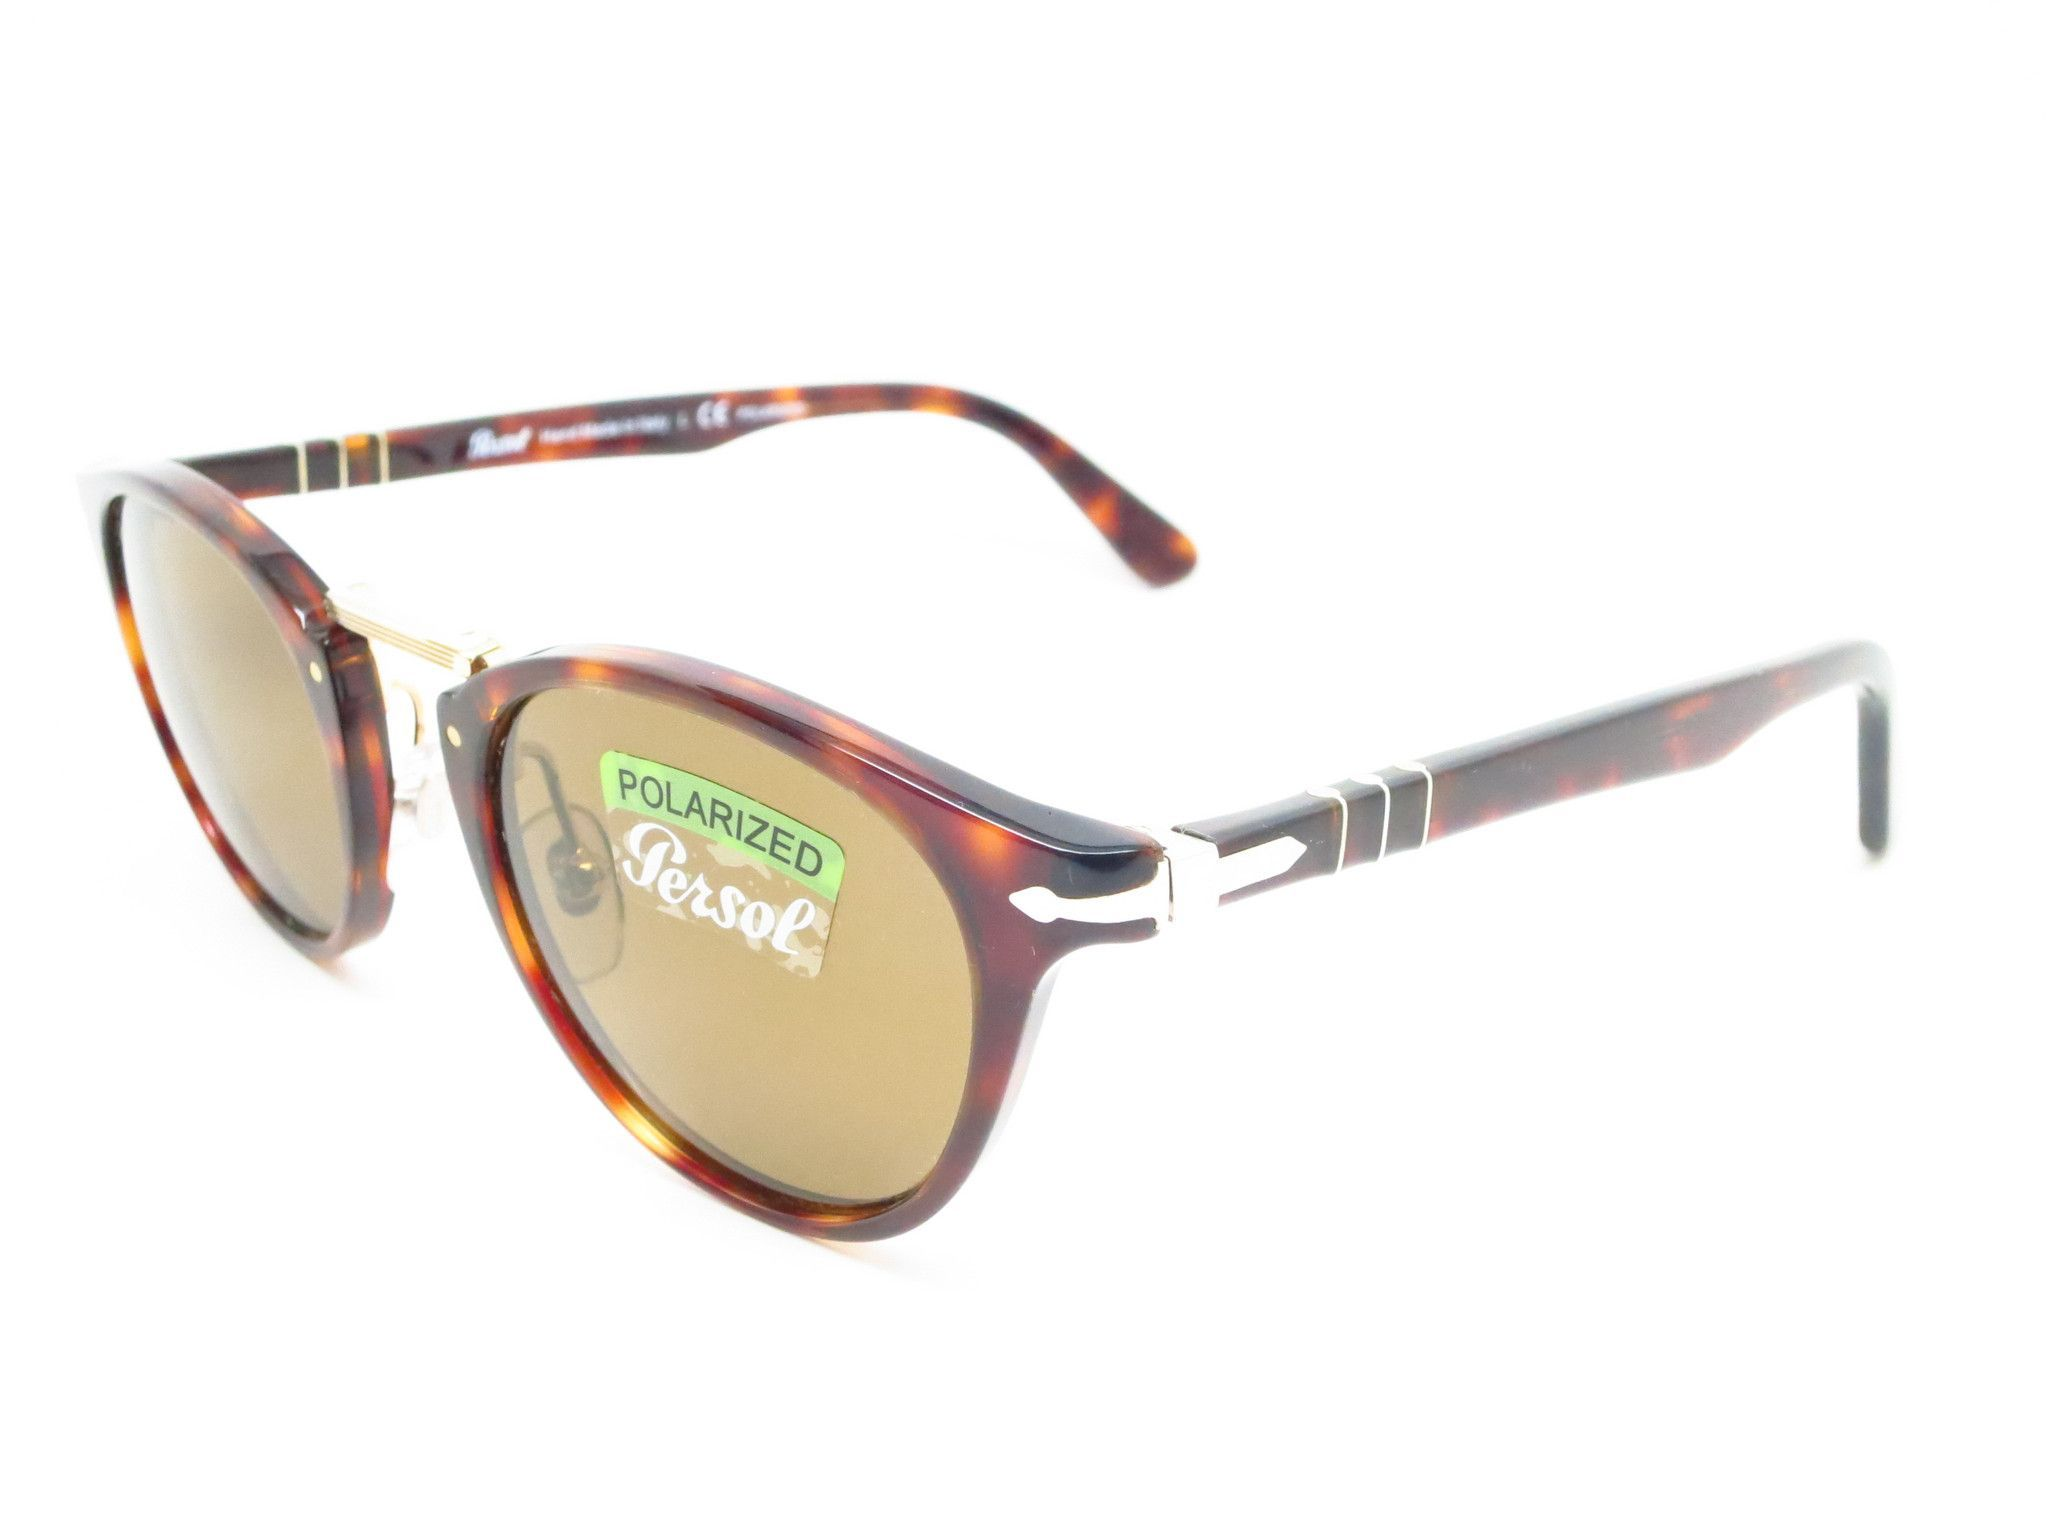 dfaf4acdd5a5 ... Eye Heart Shades. Persol PO 3108-S Product Details Brand Name : Persol  Model Number : PO 3108